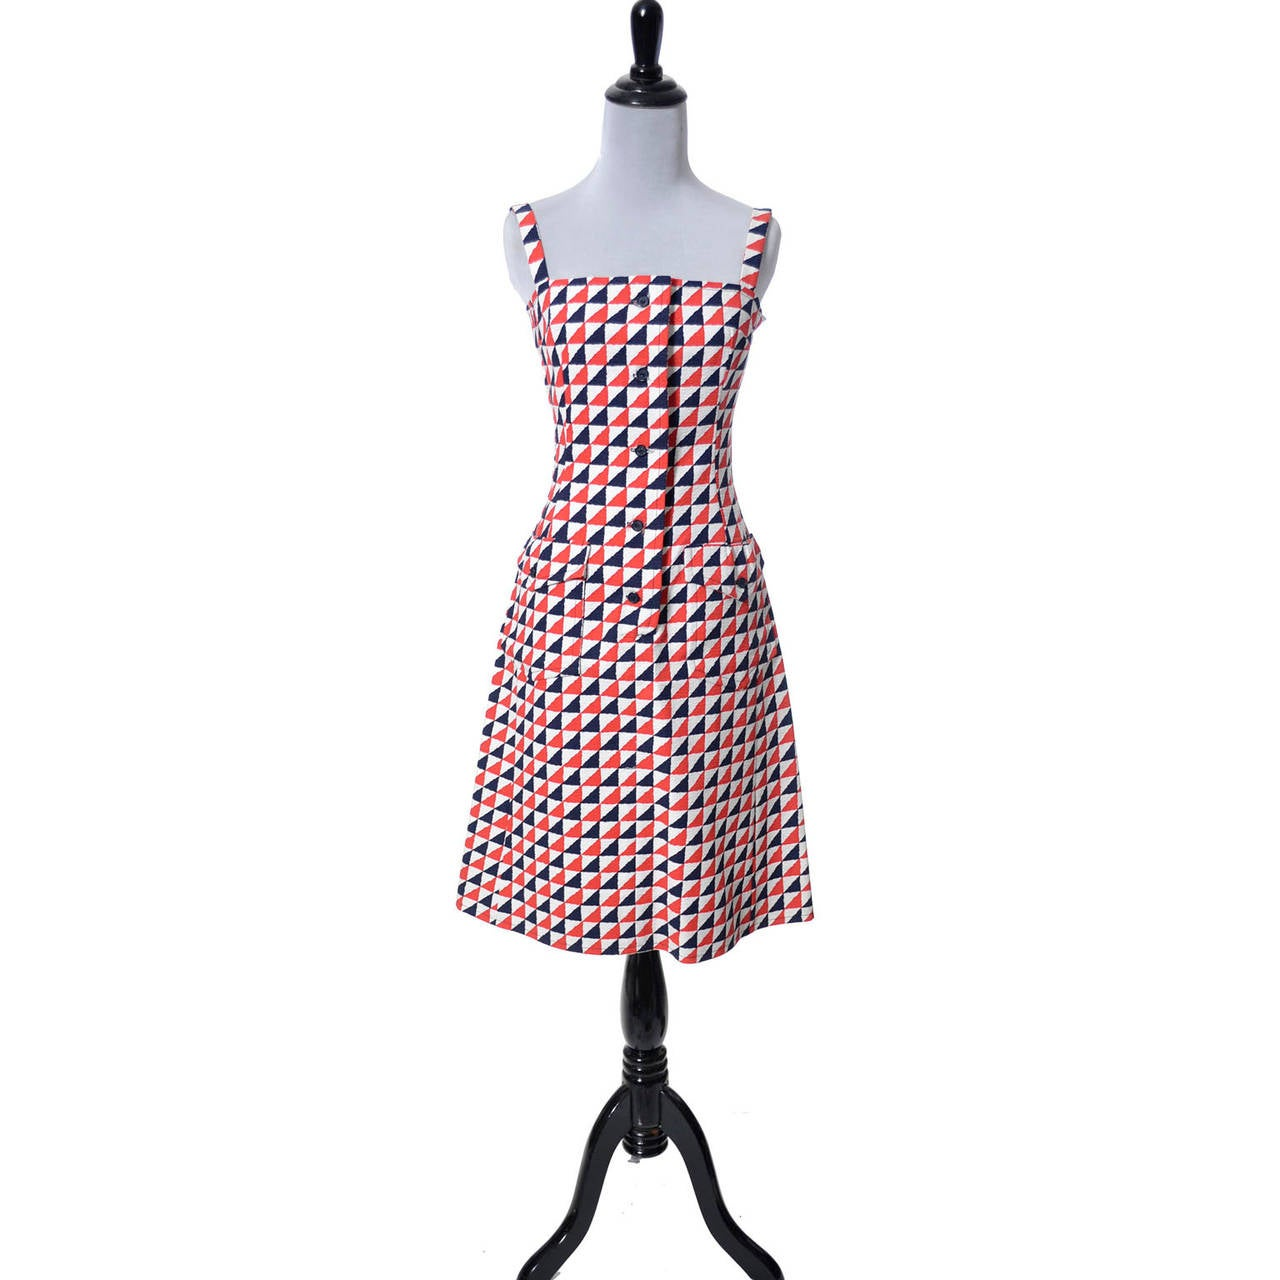 Beige Givenchy Nouvelle Boutique Vintage Dress in Red White & Blue Structured Cotton  For Sale